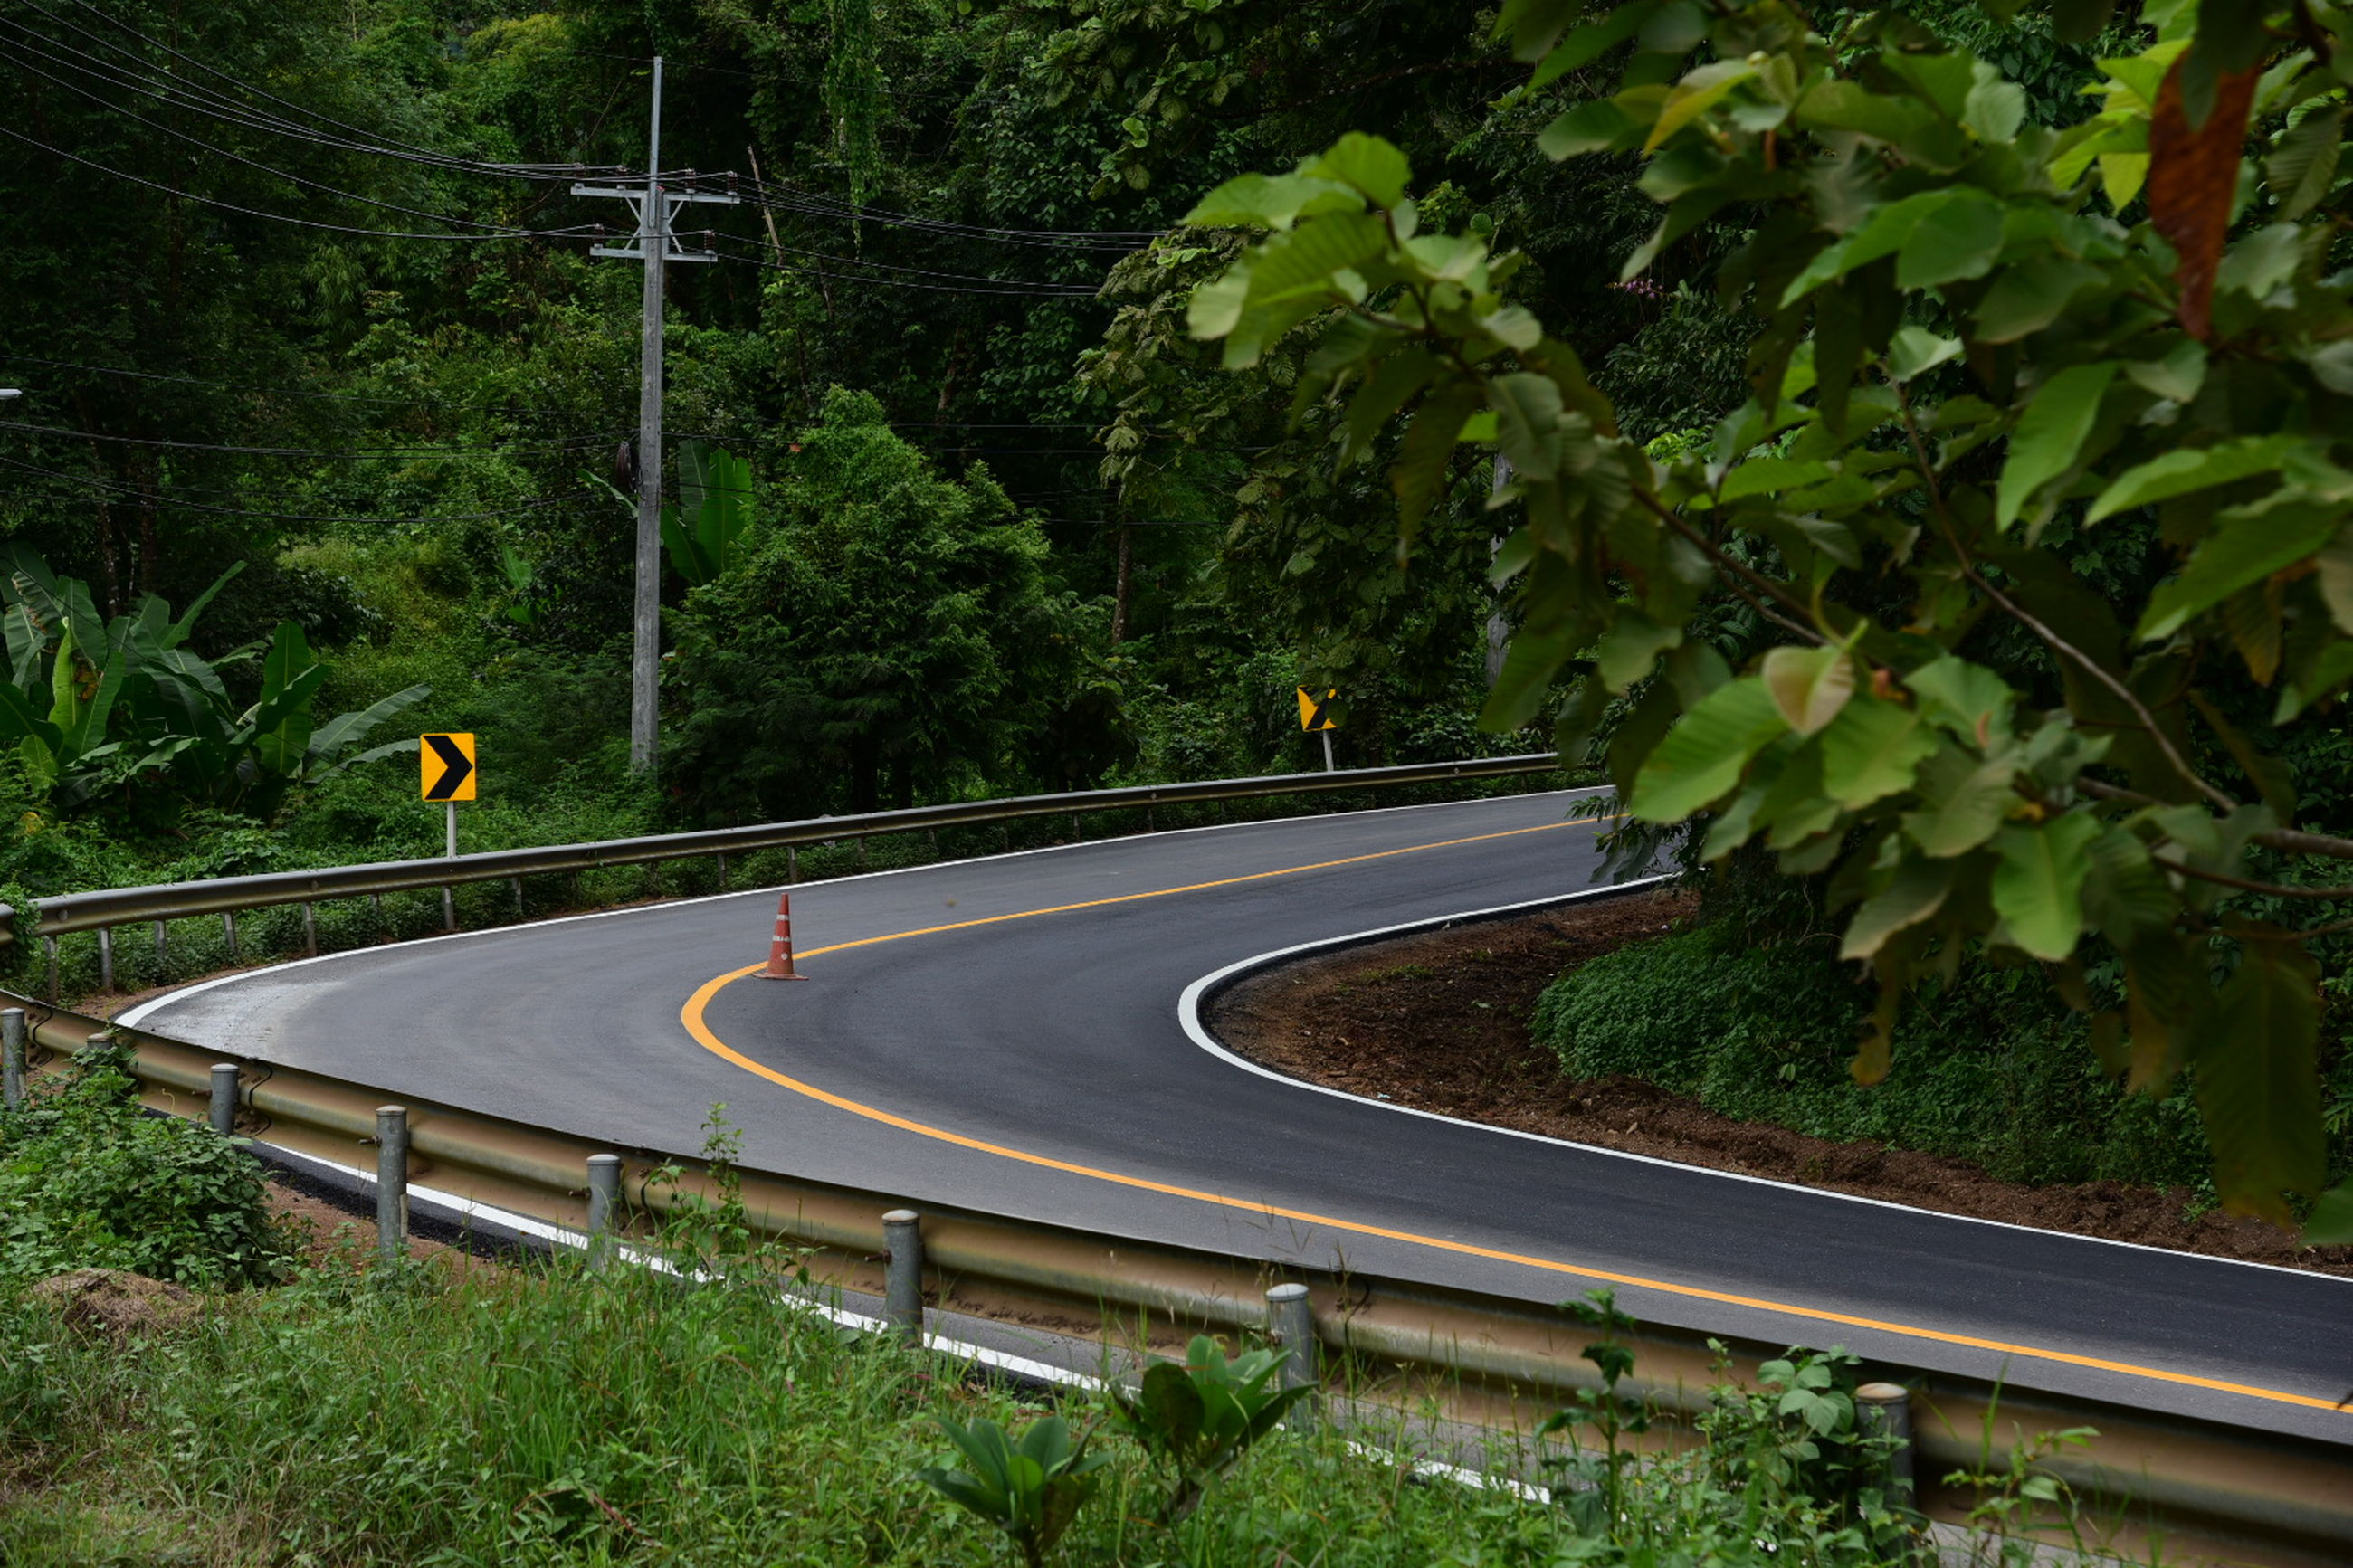 curve, tree, no people, growth, nature, road, traffic circle, outdoors, day